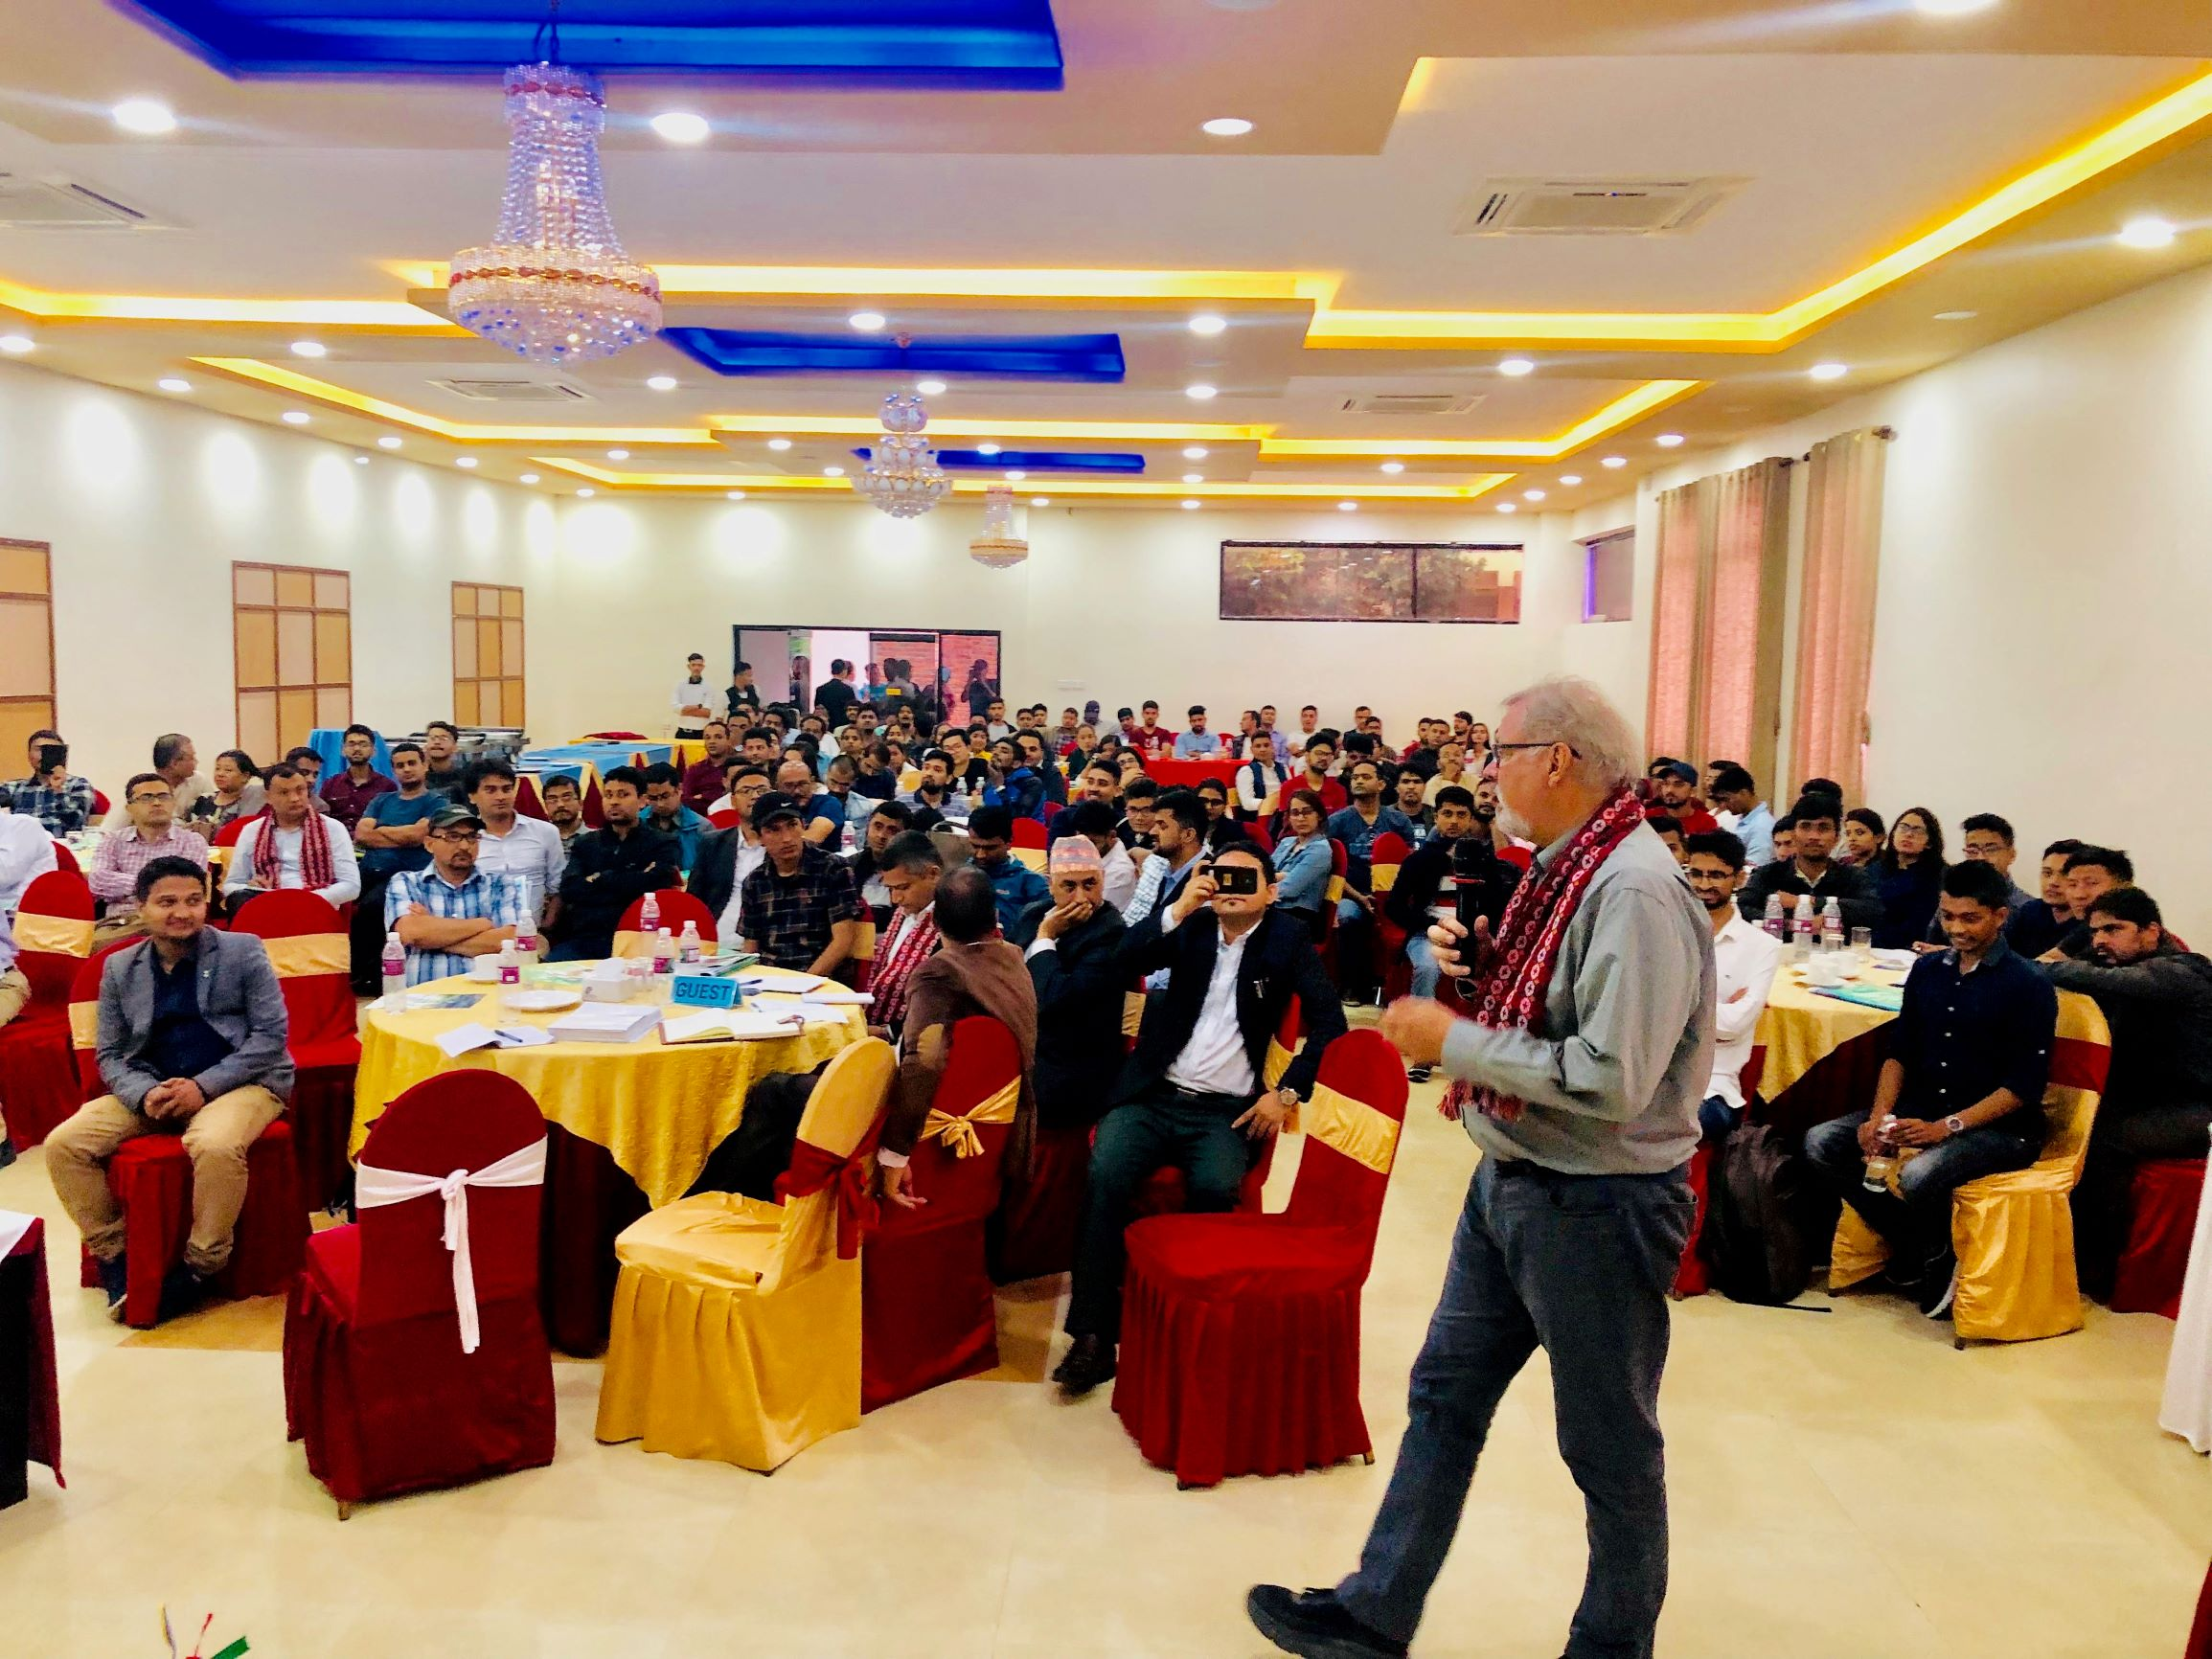 Dr. Timothy Stearns speaks at the Internationalization of University Education Conference in Nepal.